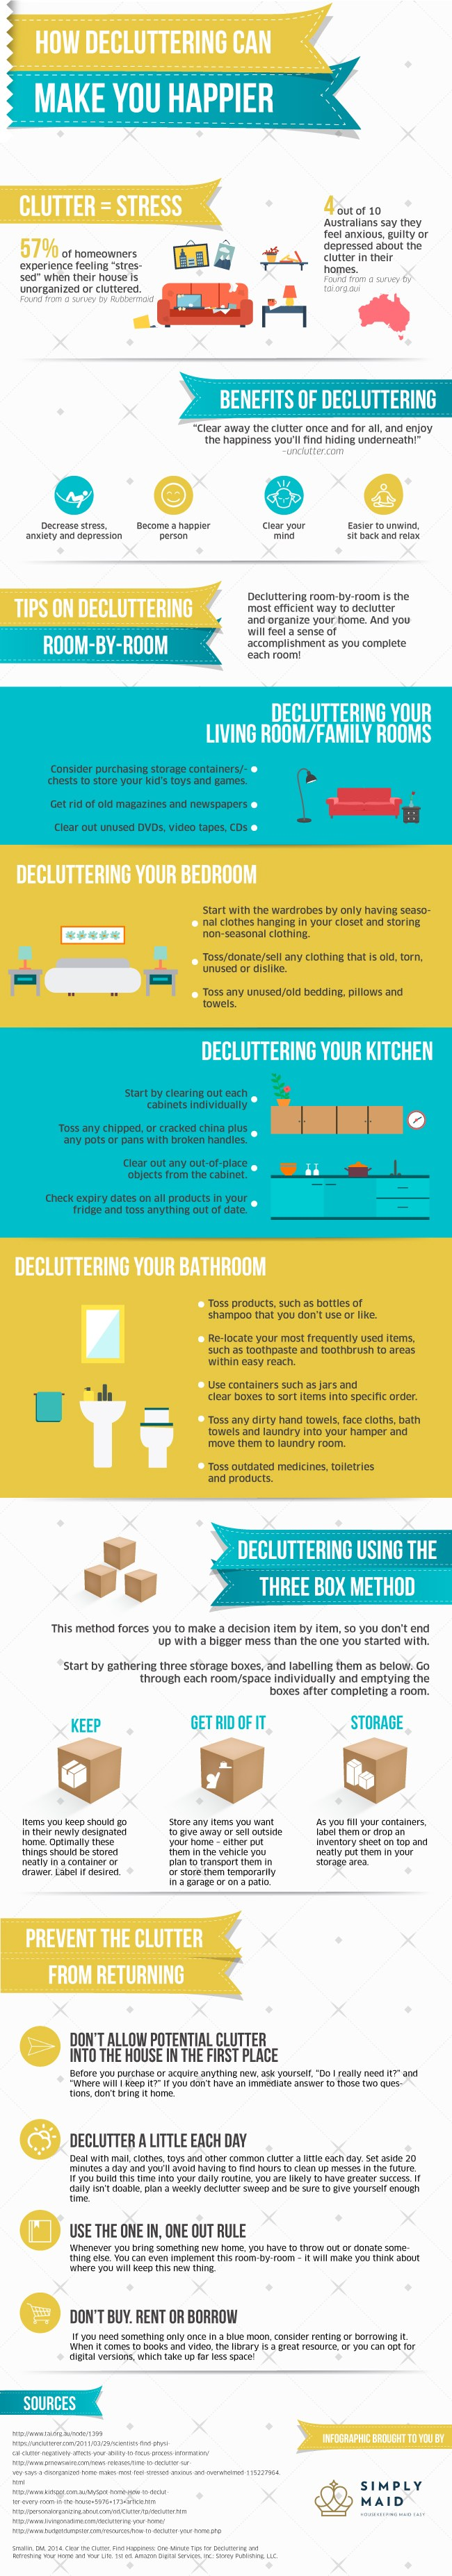 Home decluttering infographic